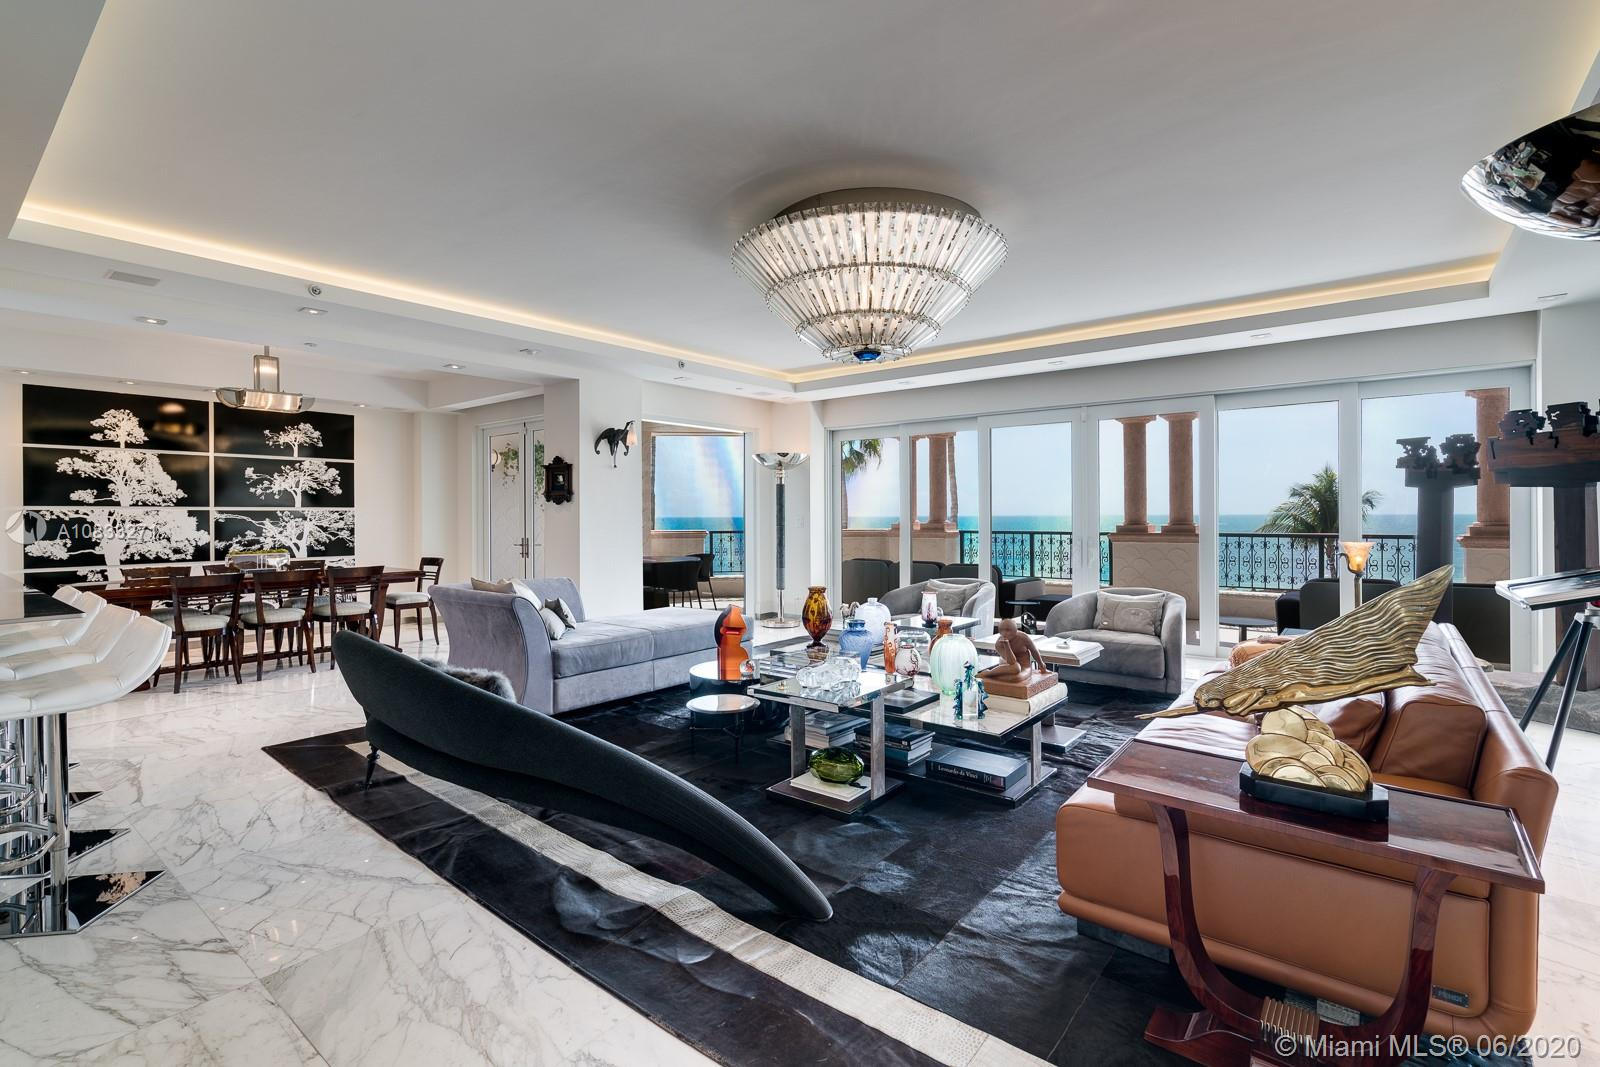 Unwind to breathtakingly peaceful direct ocean views. Oceanside Fisher Island has been masterfully renovated to accommodate the most exquisite tastes.  Two gorgeous bedroom suites, guest half bath, additional living space artistically integrated into a personal gym and opulent foyer. This unique layout now offers 2,830 SQFT as per owners assessment. Parking for 2 cars & 1 golf cart. Impressive amenities includes world-class golf, marina, tennis facilities, private school and access to famous Fisher Island Club.